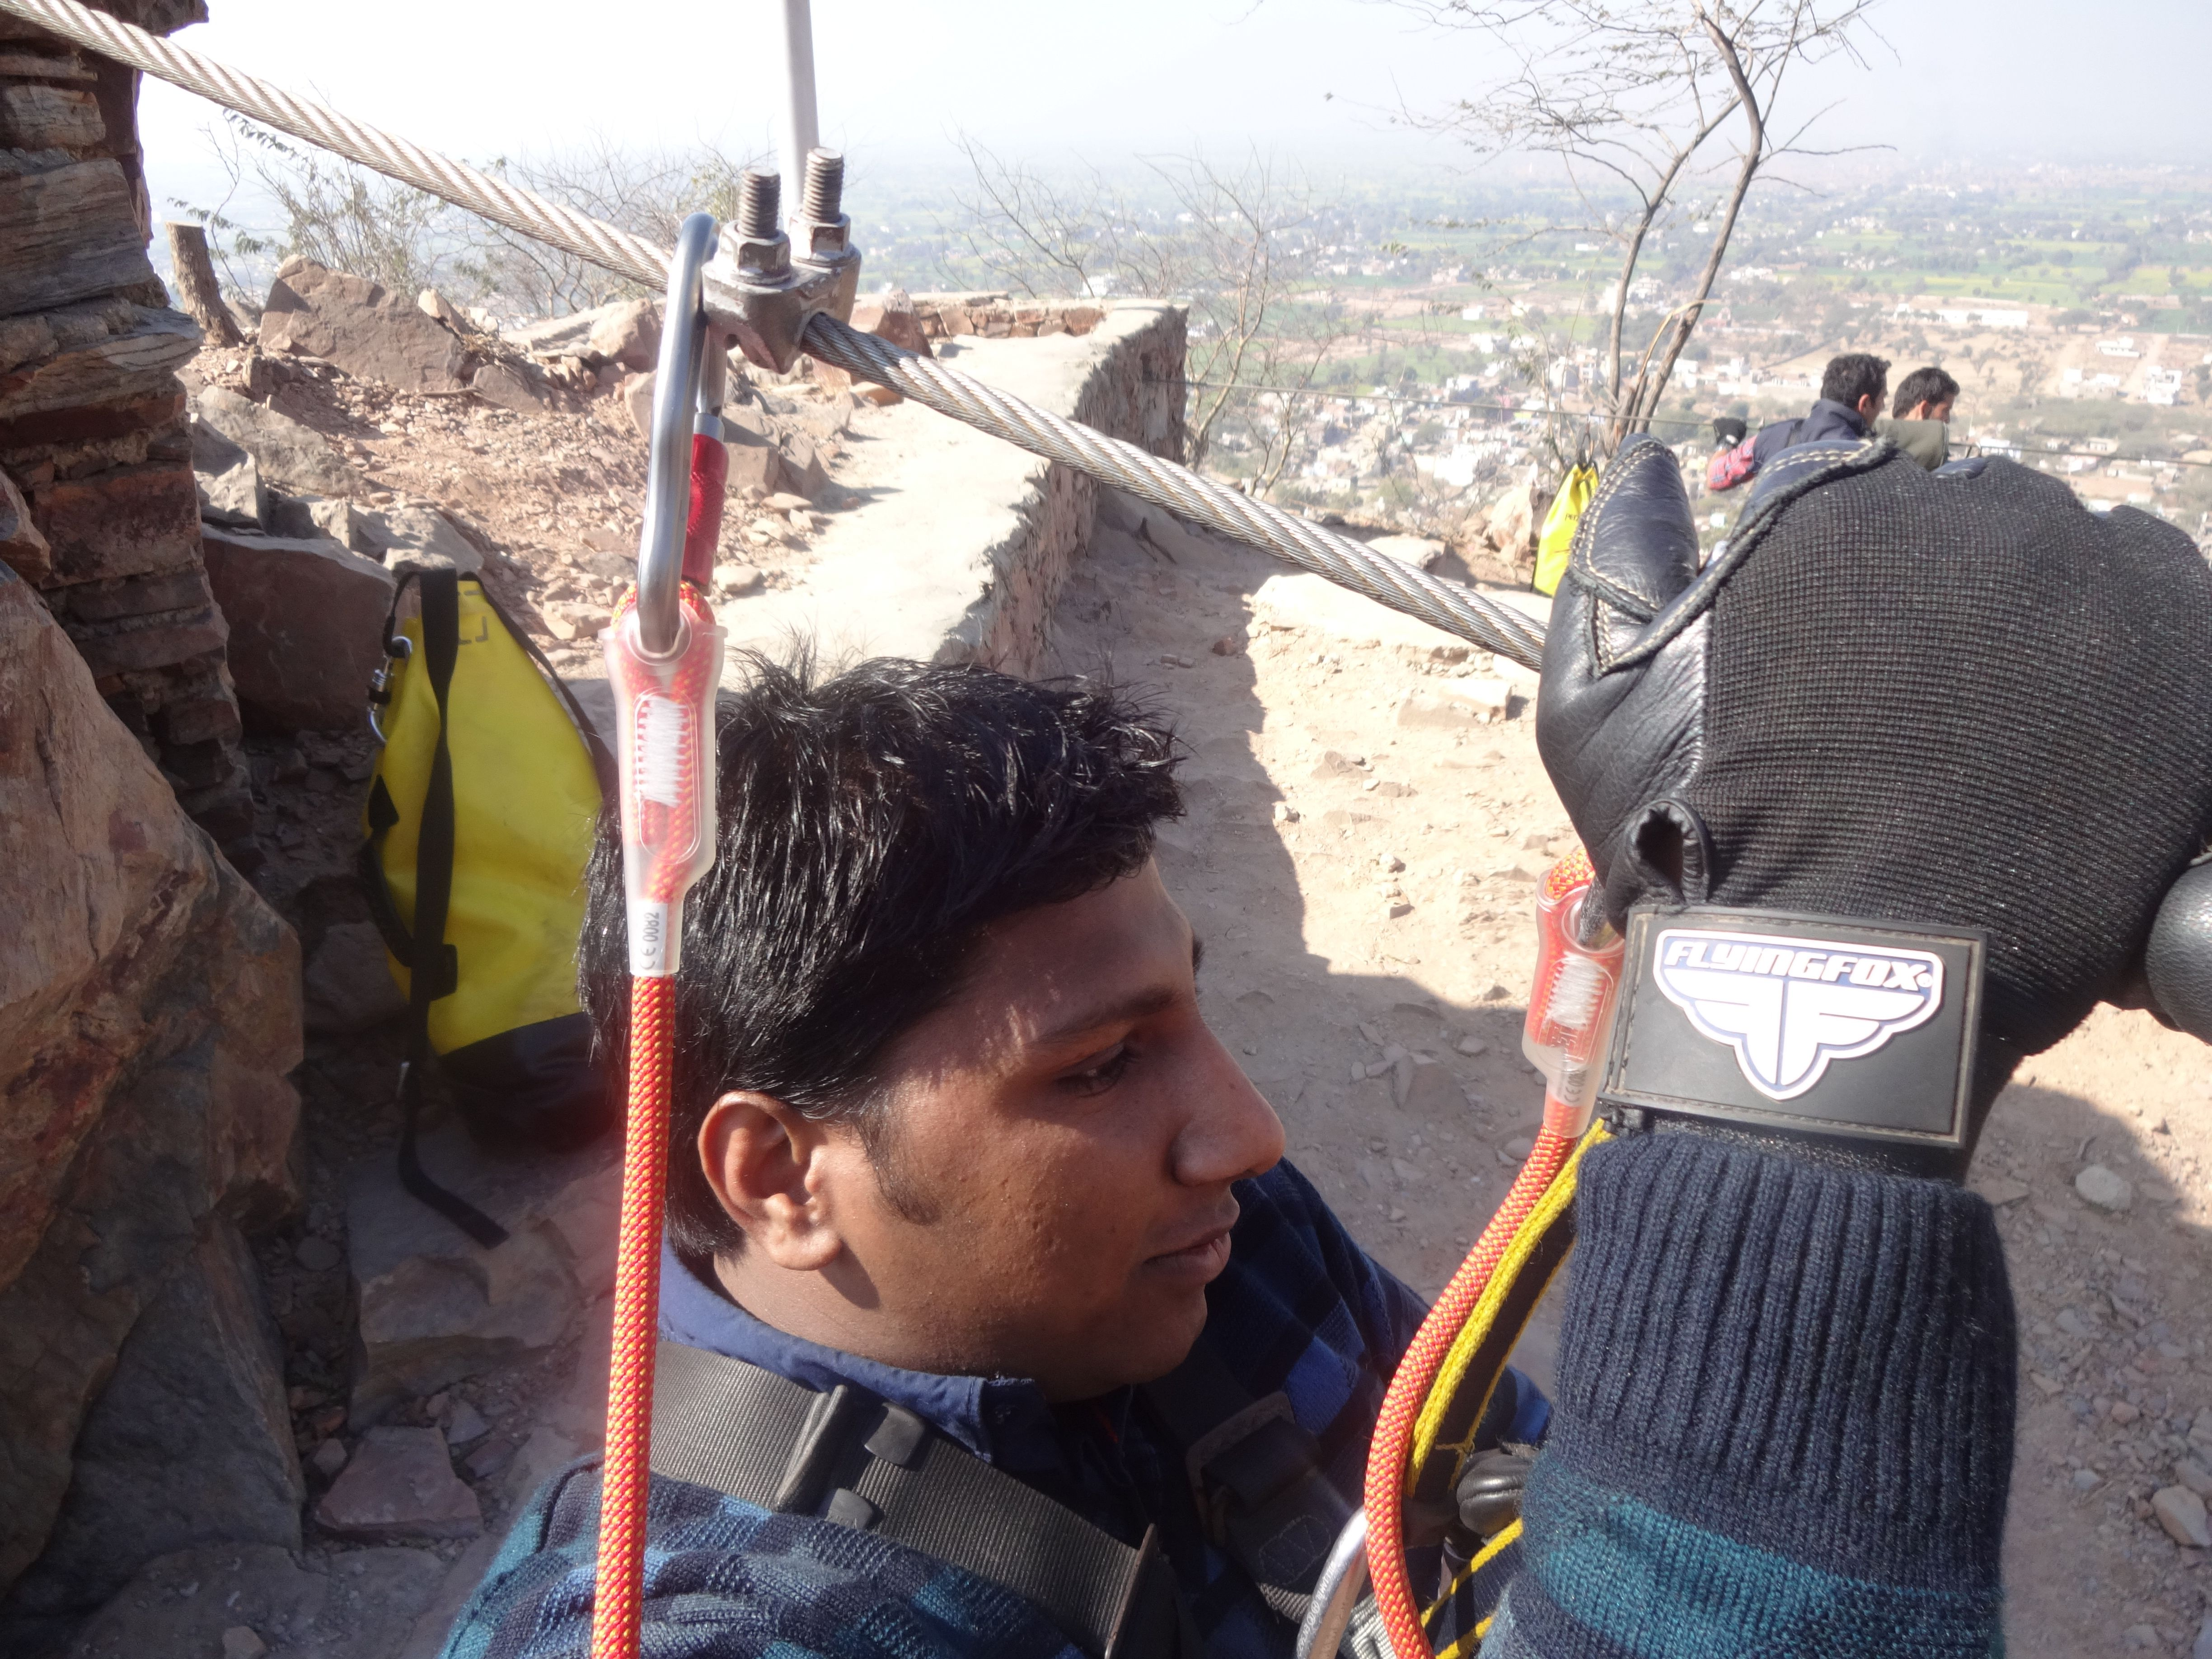 First Official Trip To Flying Fox Neemrana Newemployee Firstvisit Officialvisit Flyingfoxneemrana Http Buff Ly 24s Adventure Tours New Employee Ziplining